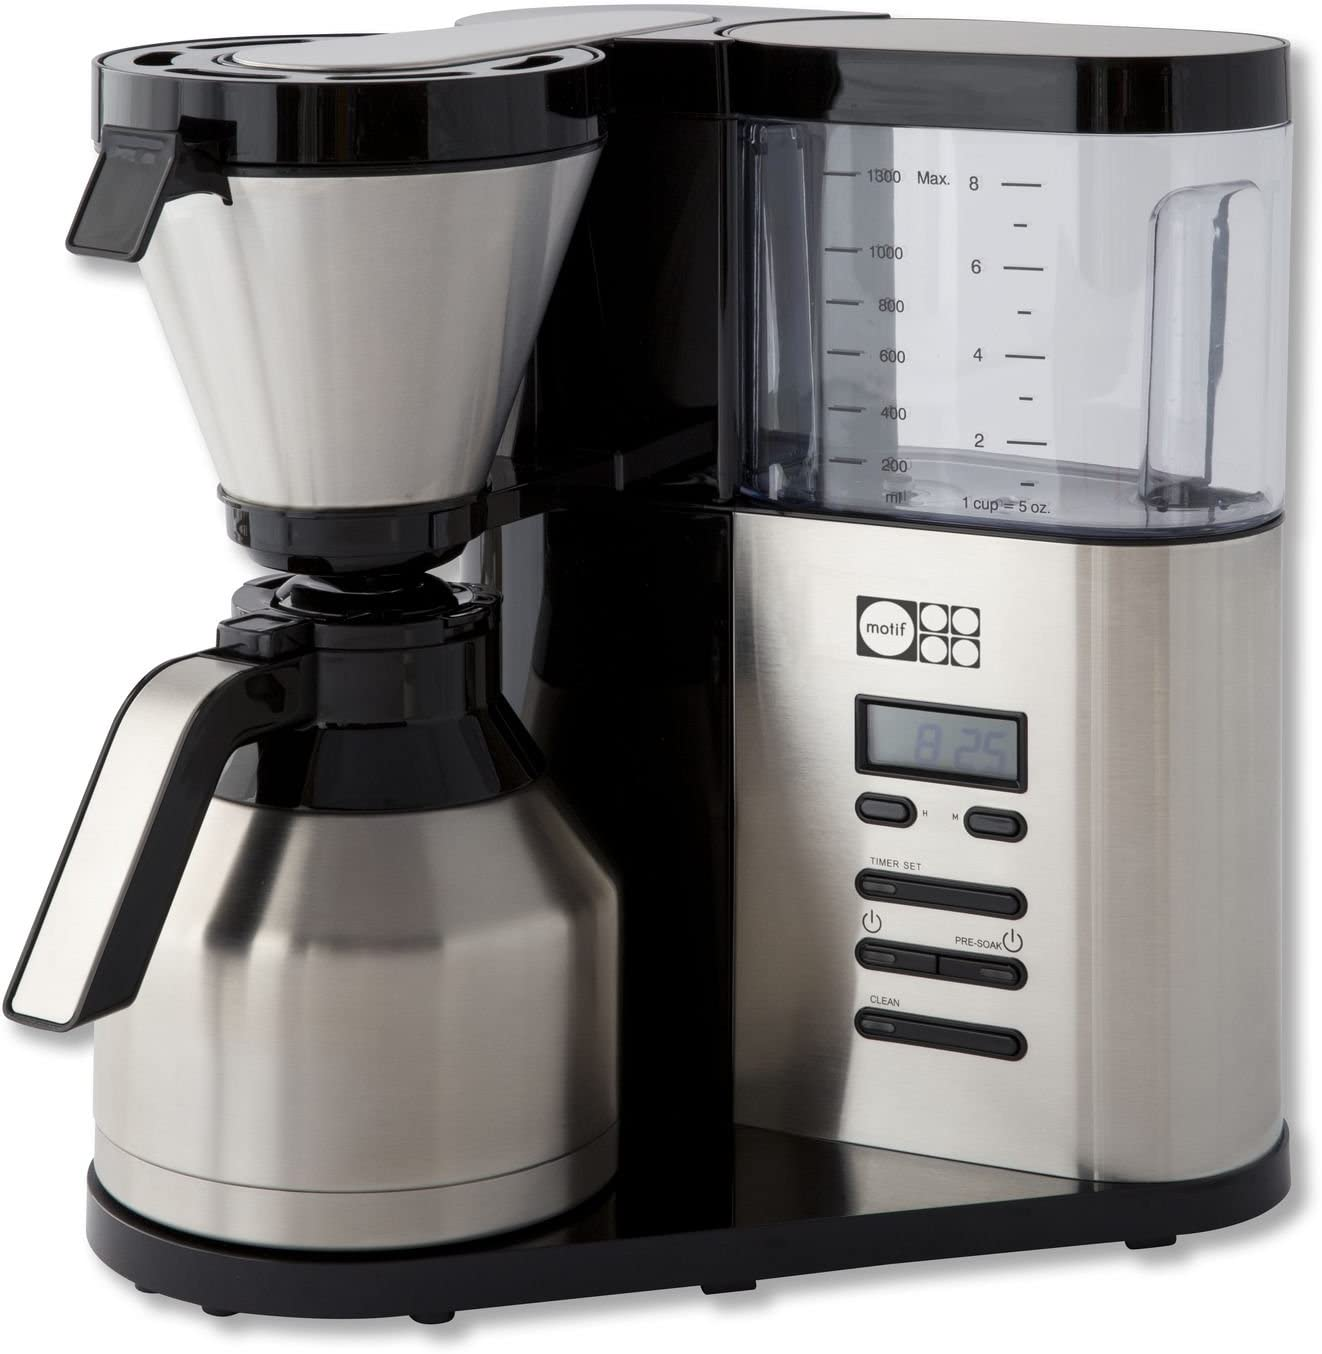 Amazon.com: Motif Elements - Cafetera, Acero inoxidable, M ...